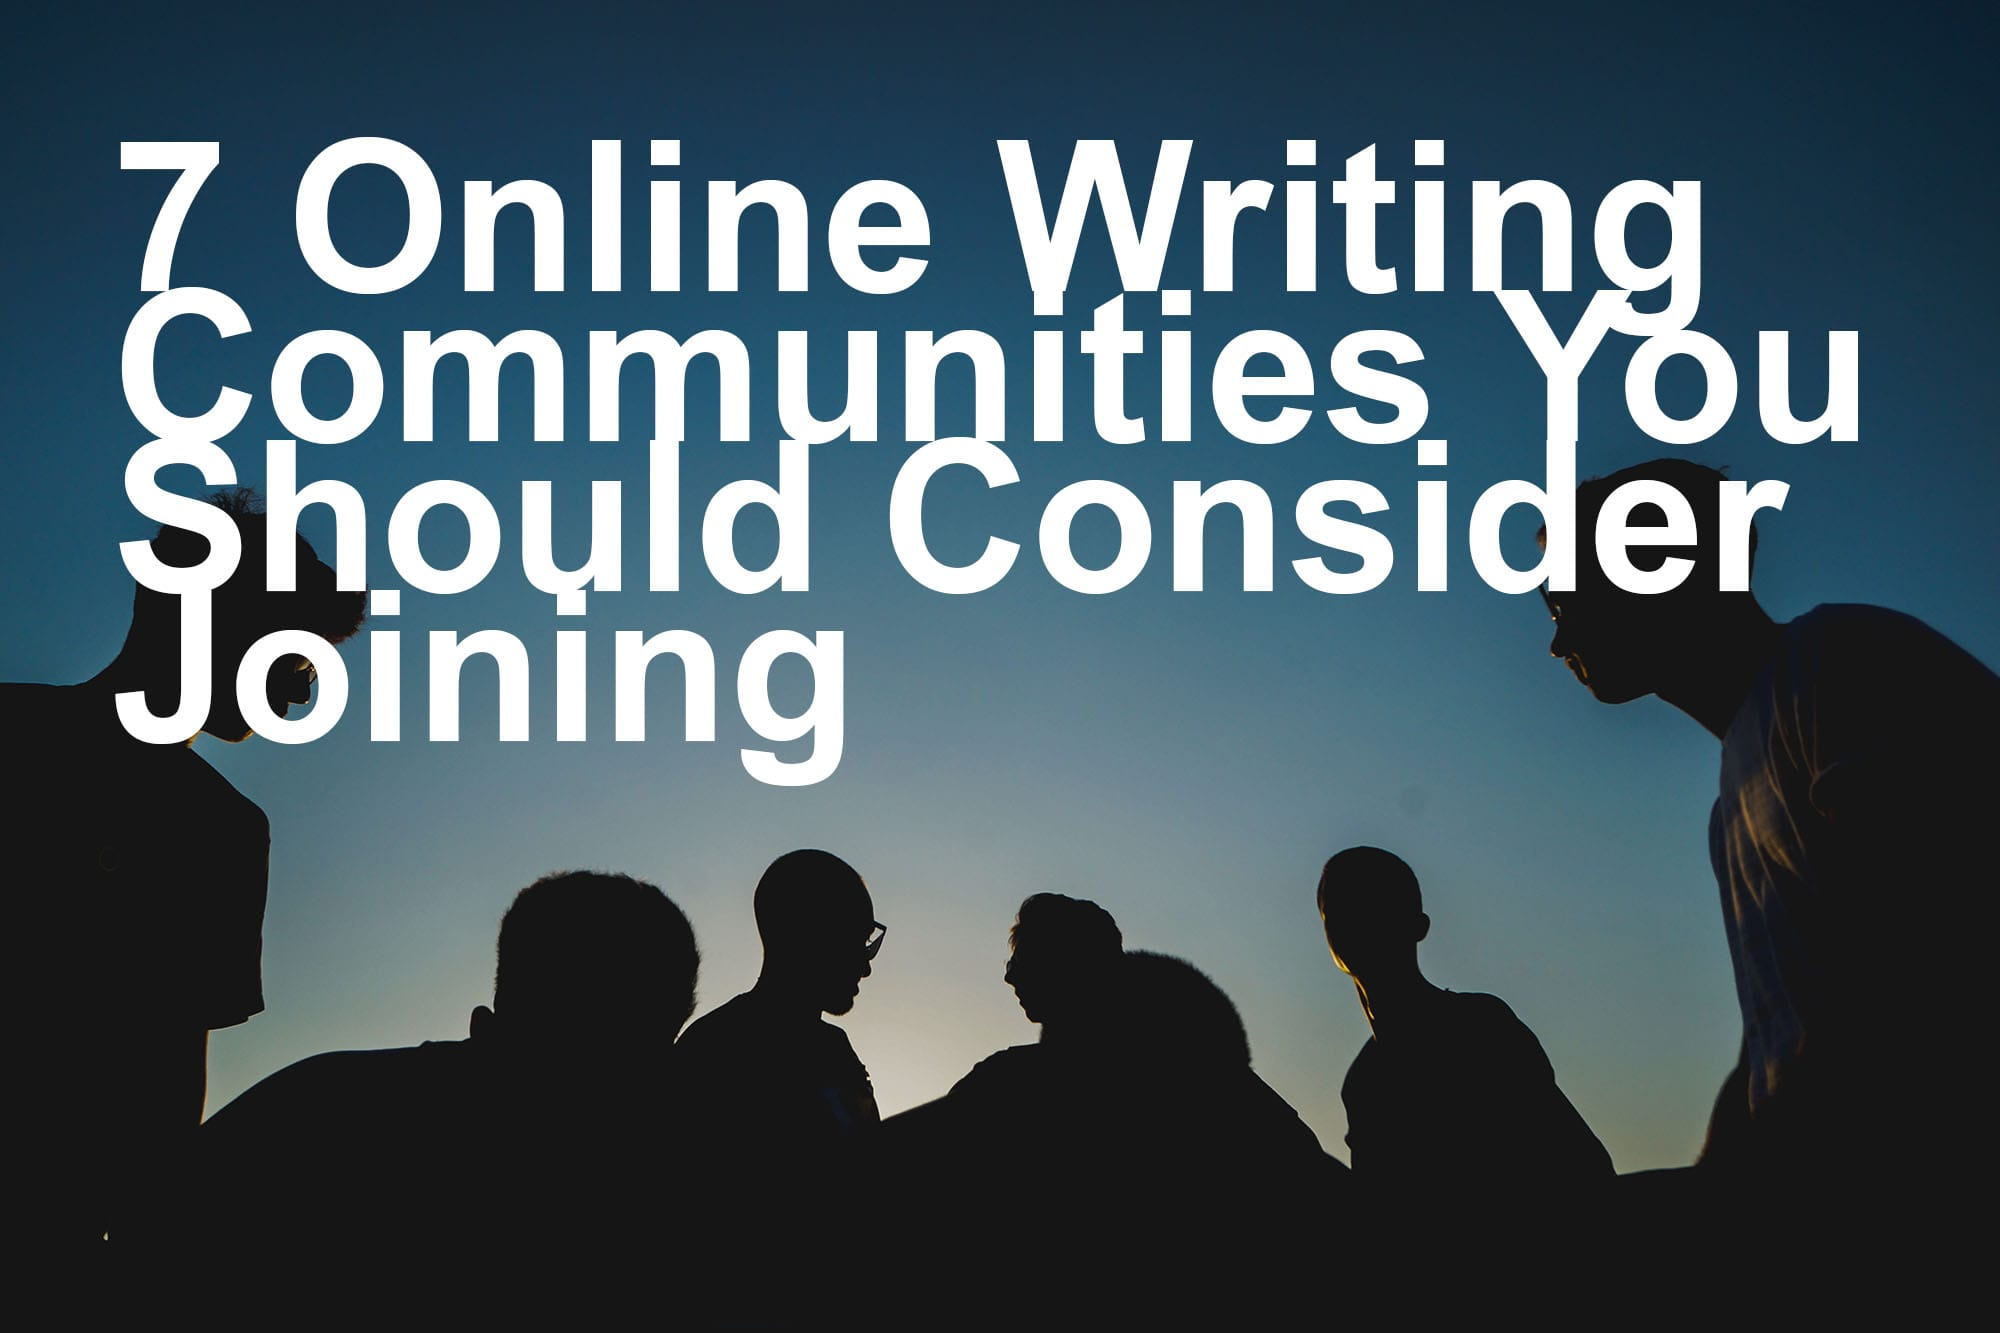 online writing communities